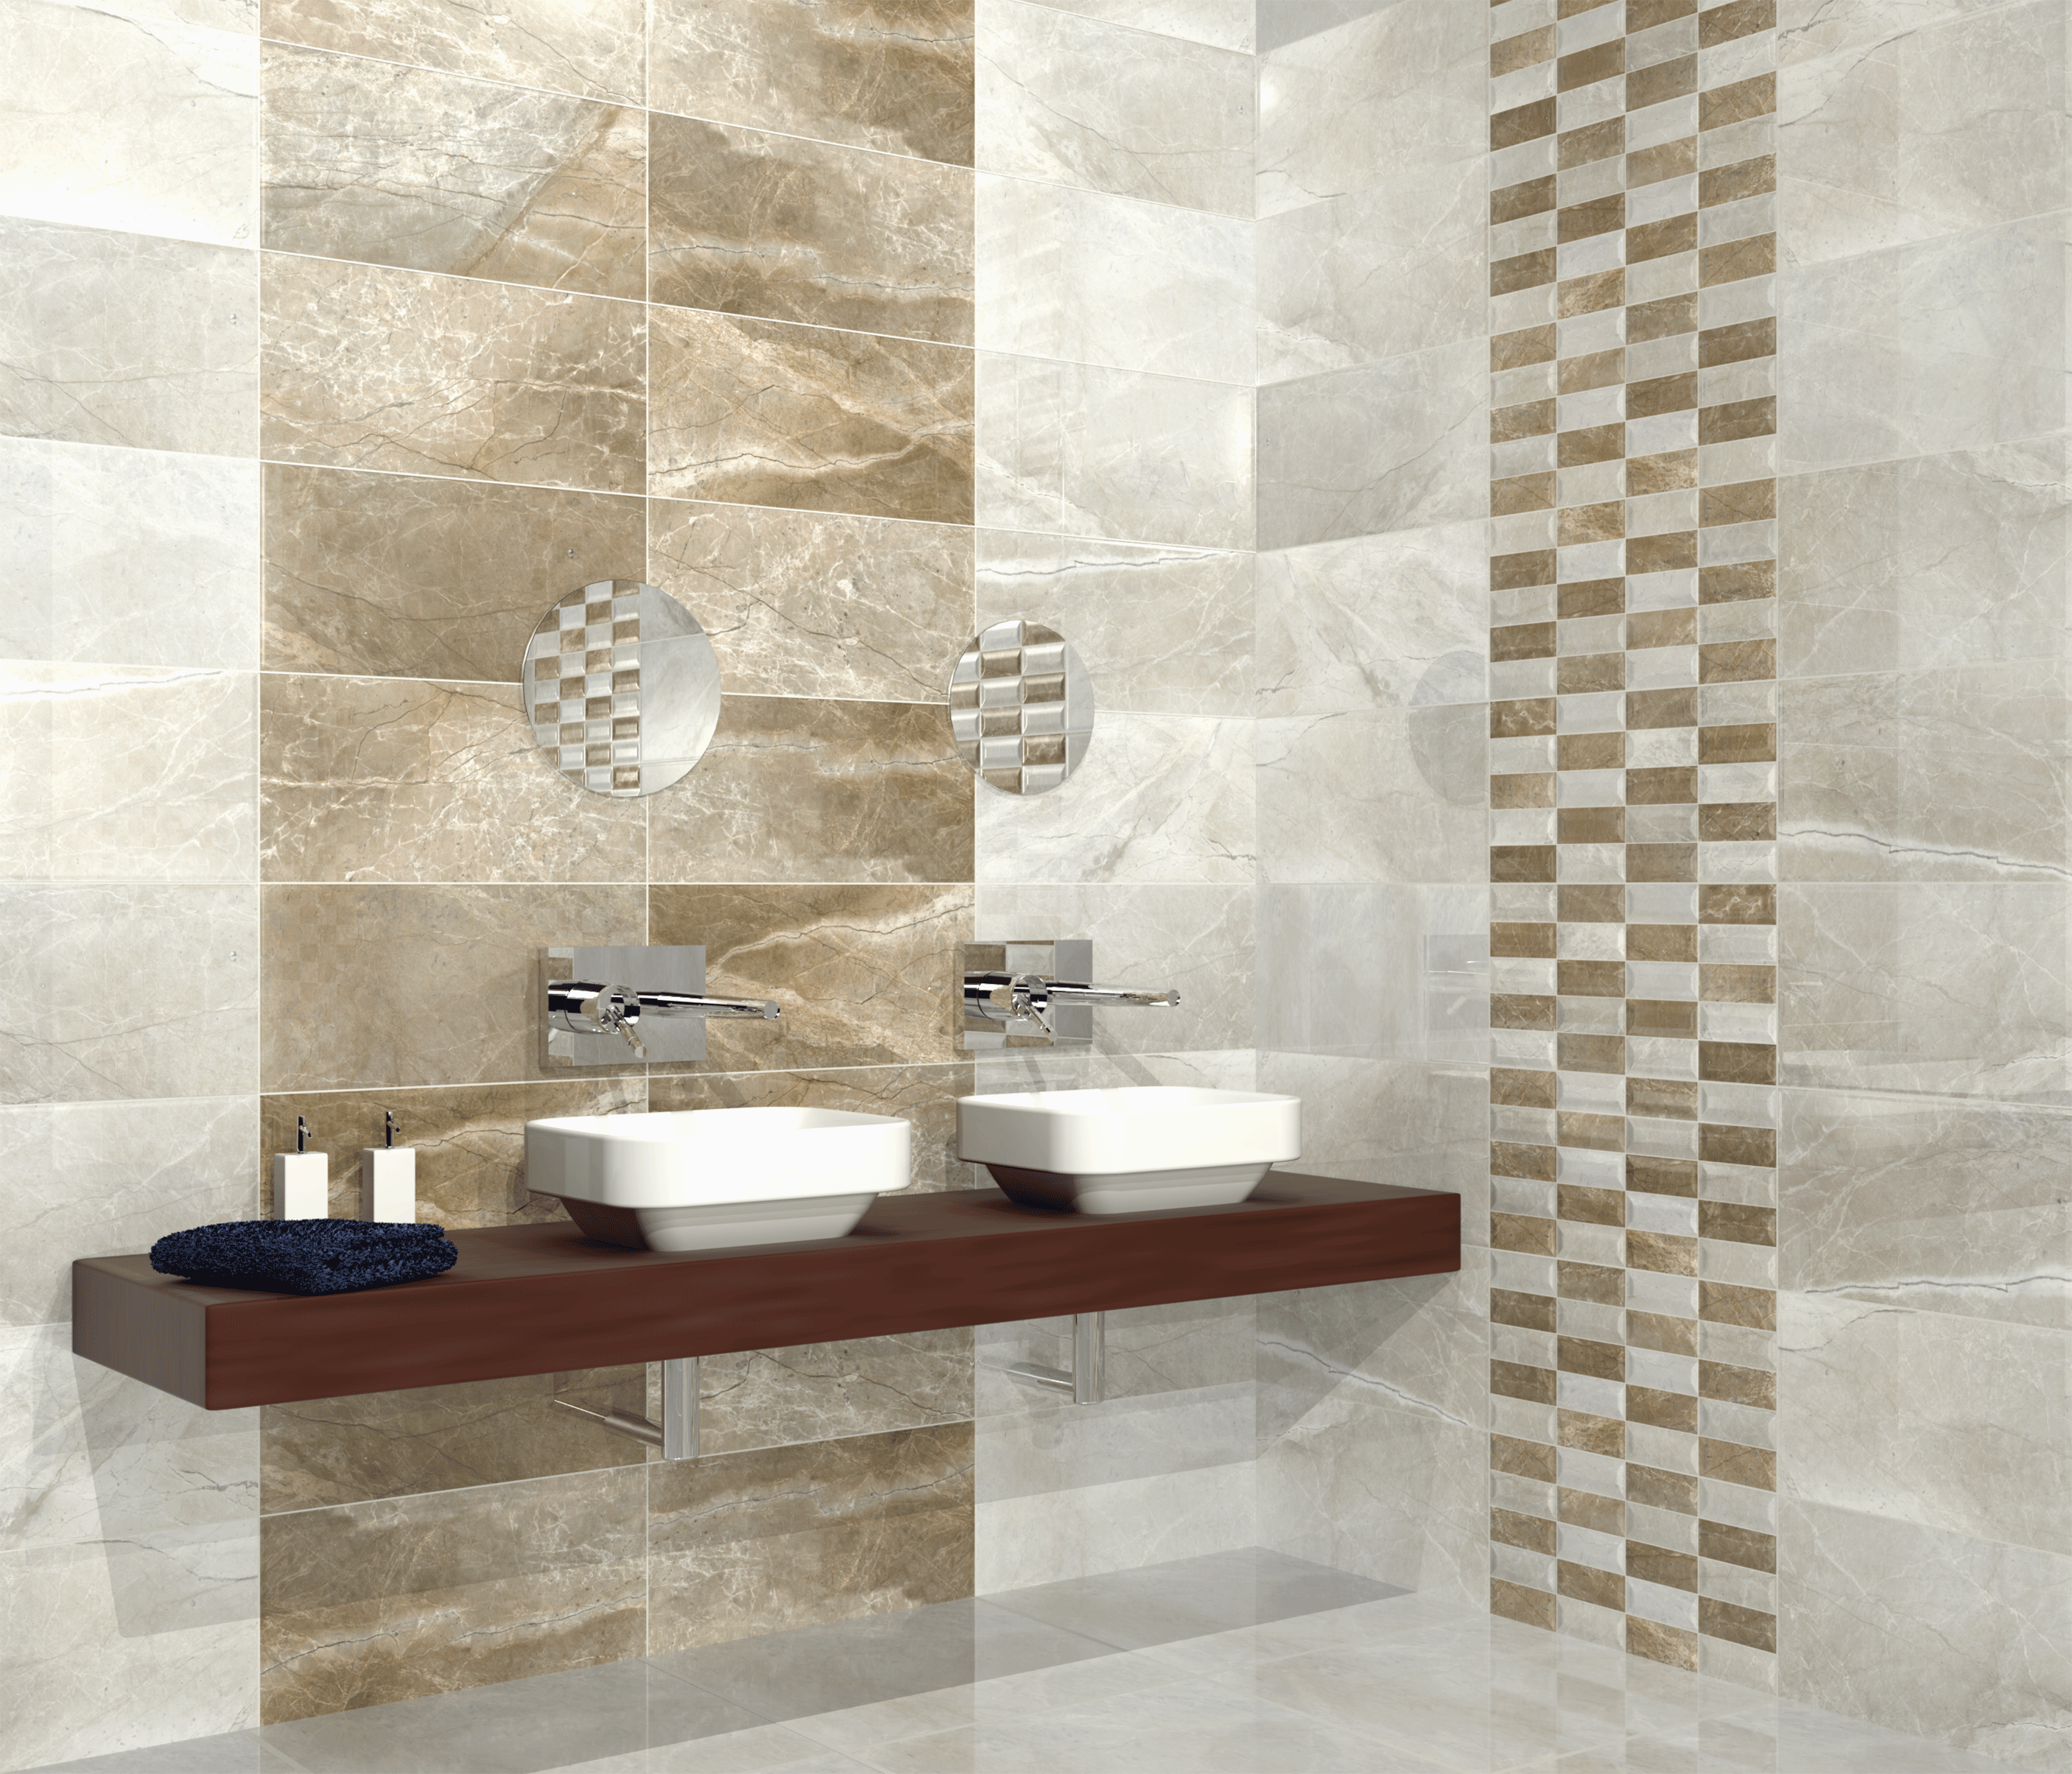 How To Choose Bathroom Tiles Which Are Perfect For Your Bathroom Designalls In 2020 Bathroom Wall Tile Design Bathroom Tile Designs Bathroom Wall Tile